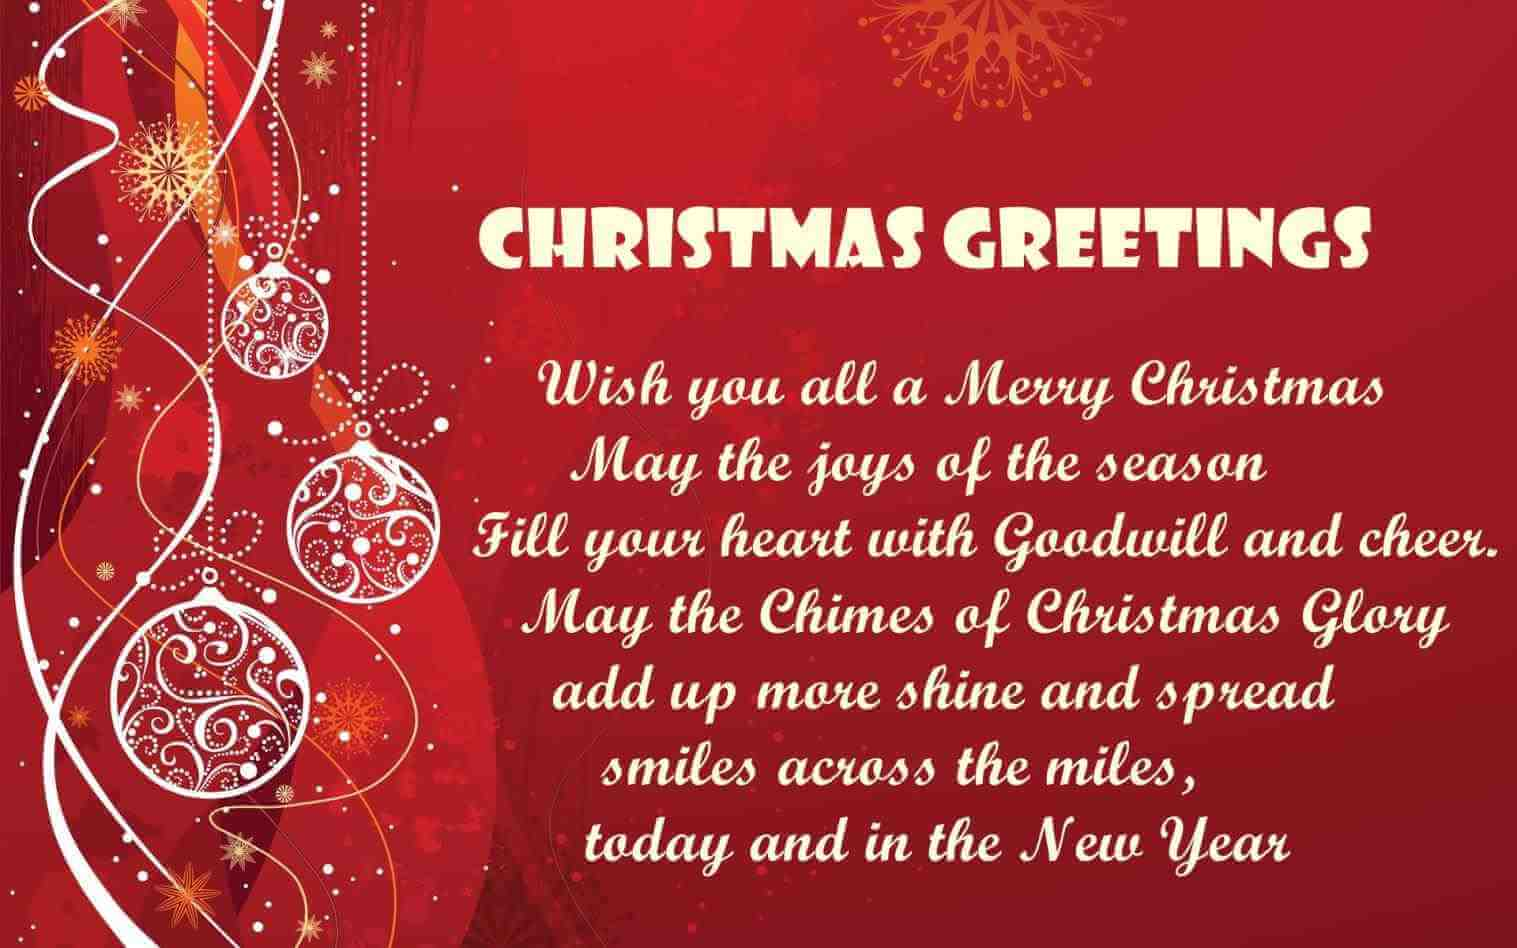 Merry Christmas Messages 2018| Christmas 2018 SMS MSG For Friends